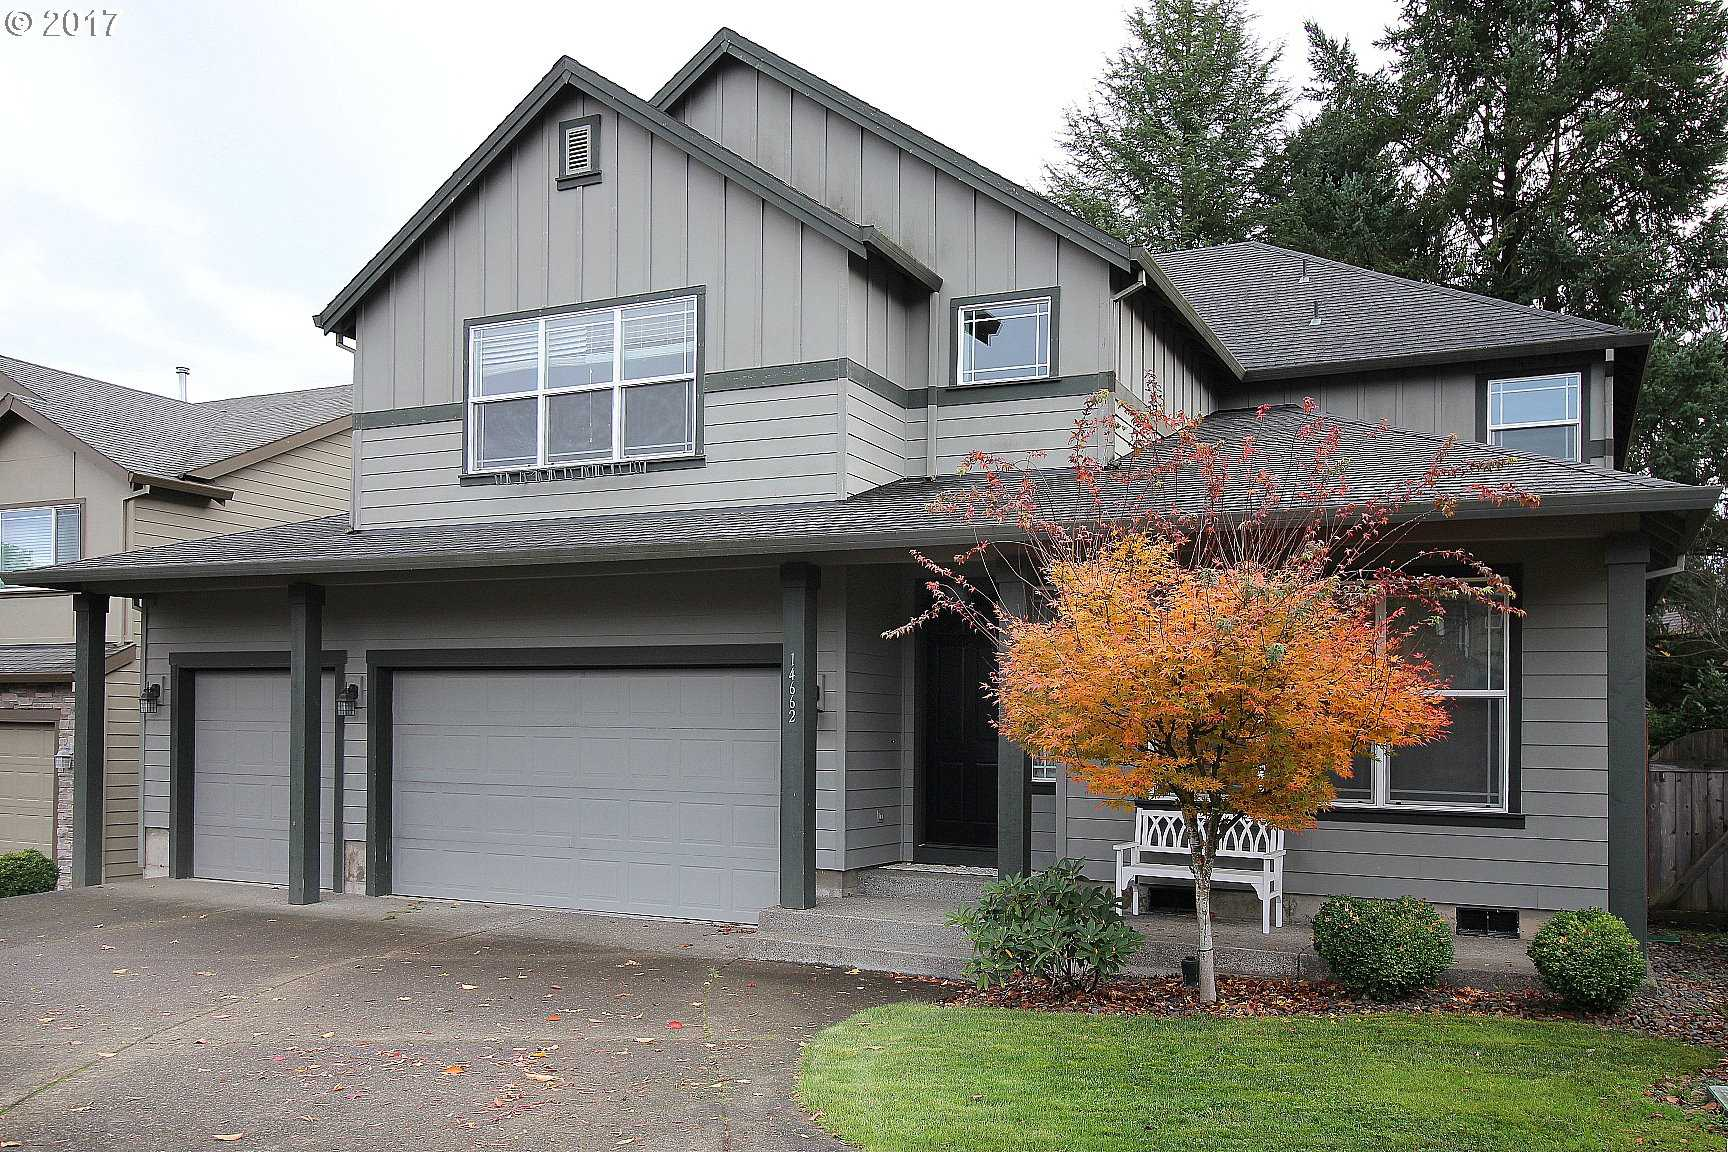 $519,000 - 5Br/3Ba -  for Sale in Tigard